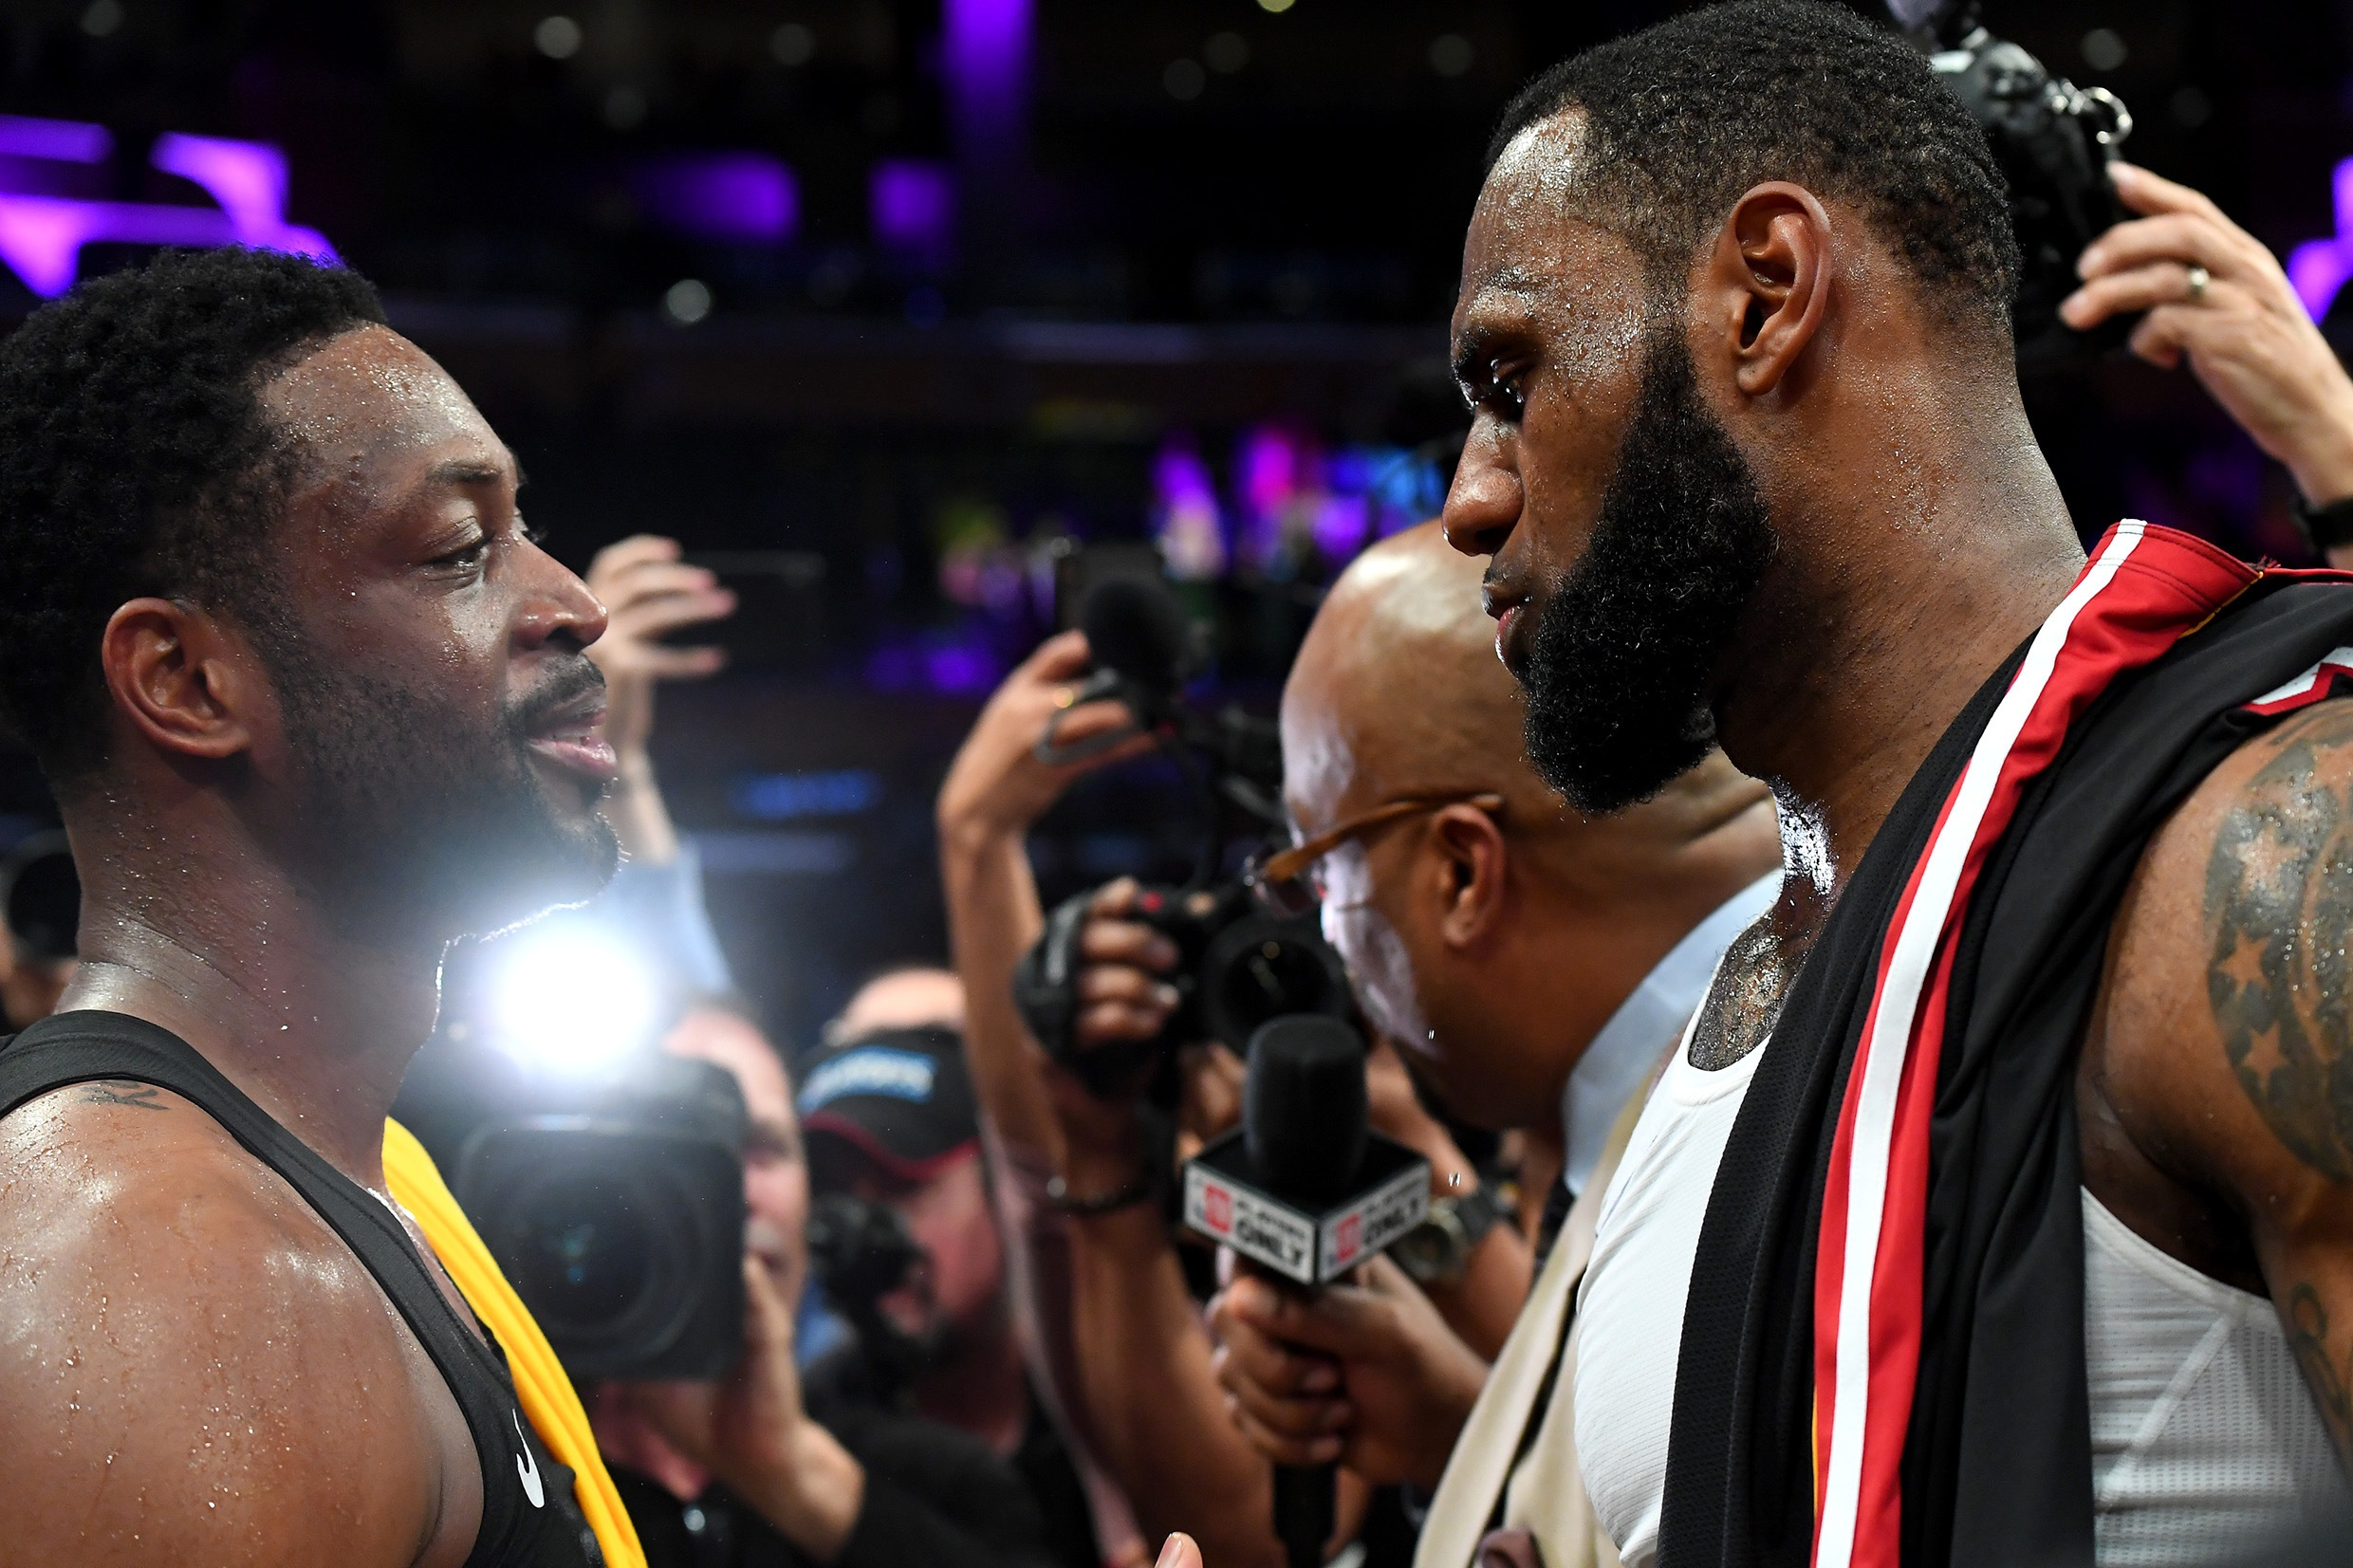 830a8d3eb2eb Dwyane Wade Defends LeBron James Against Critics - TBN Media Daily